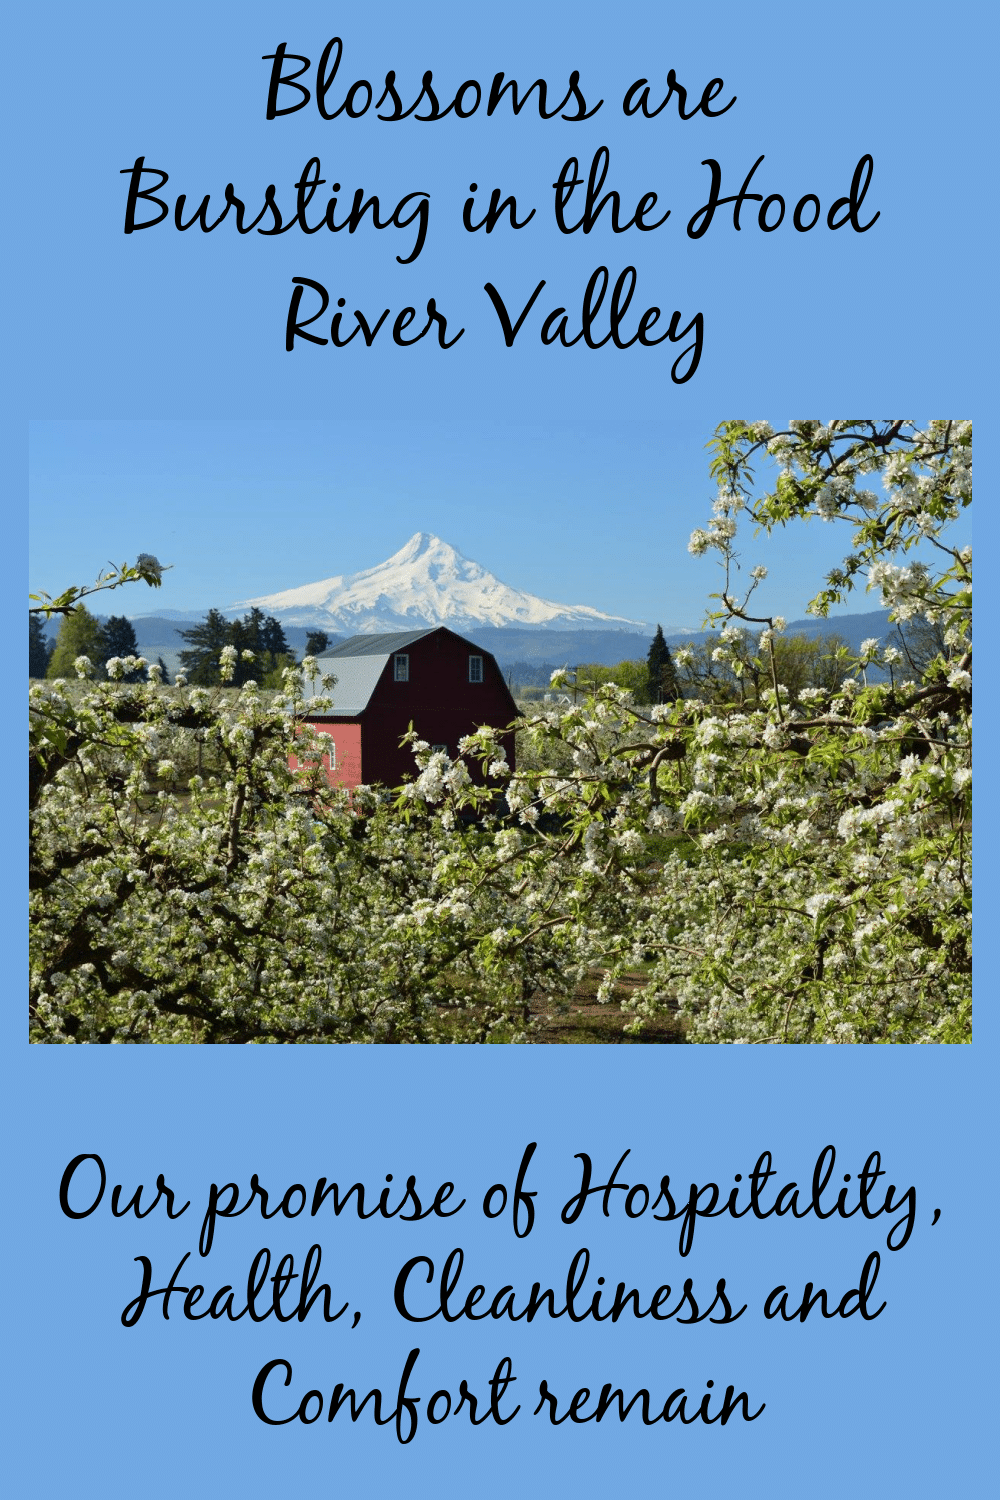 Spring Brings an Explosion of Blossoms and Color to the Hood River Valley, Old Parkdale Inn